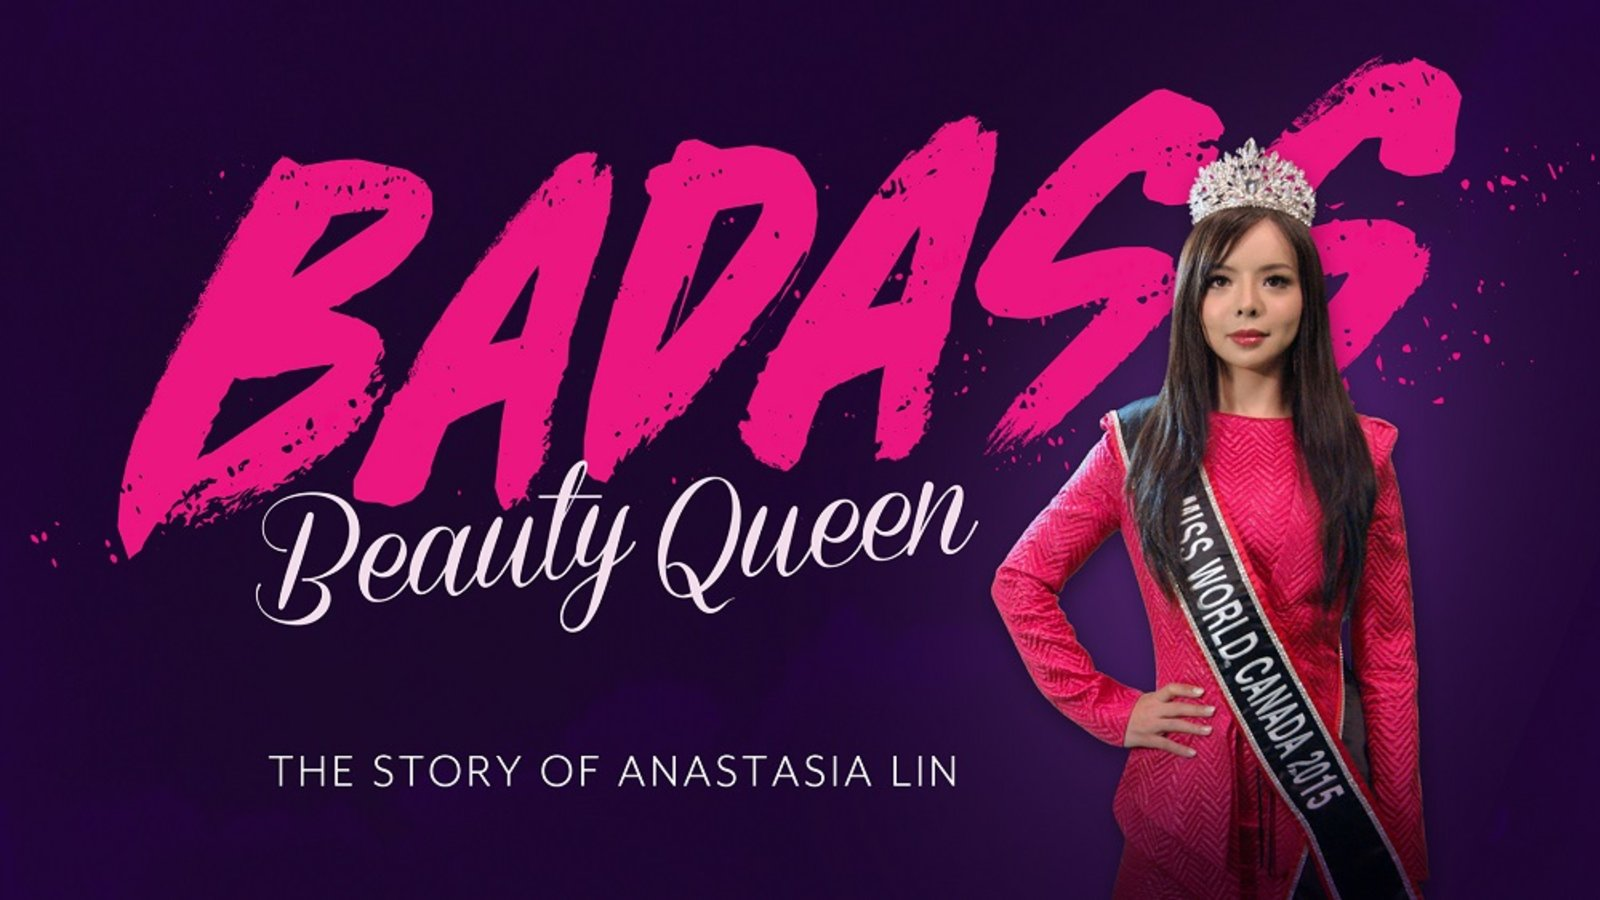 Badass Beauty Queen - Fighting For Human Rights in China